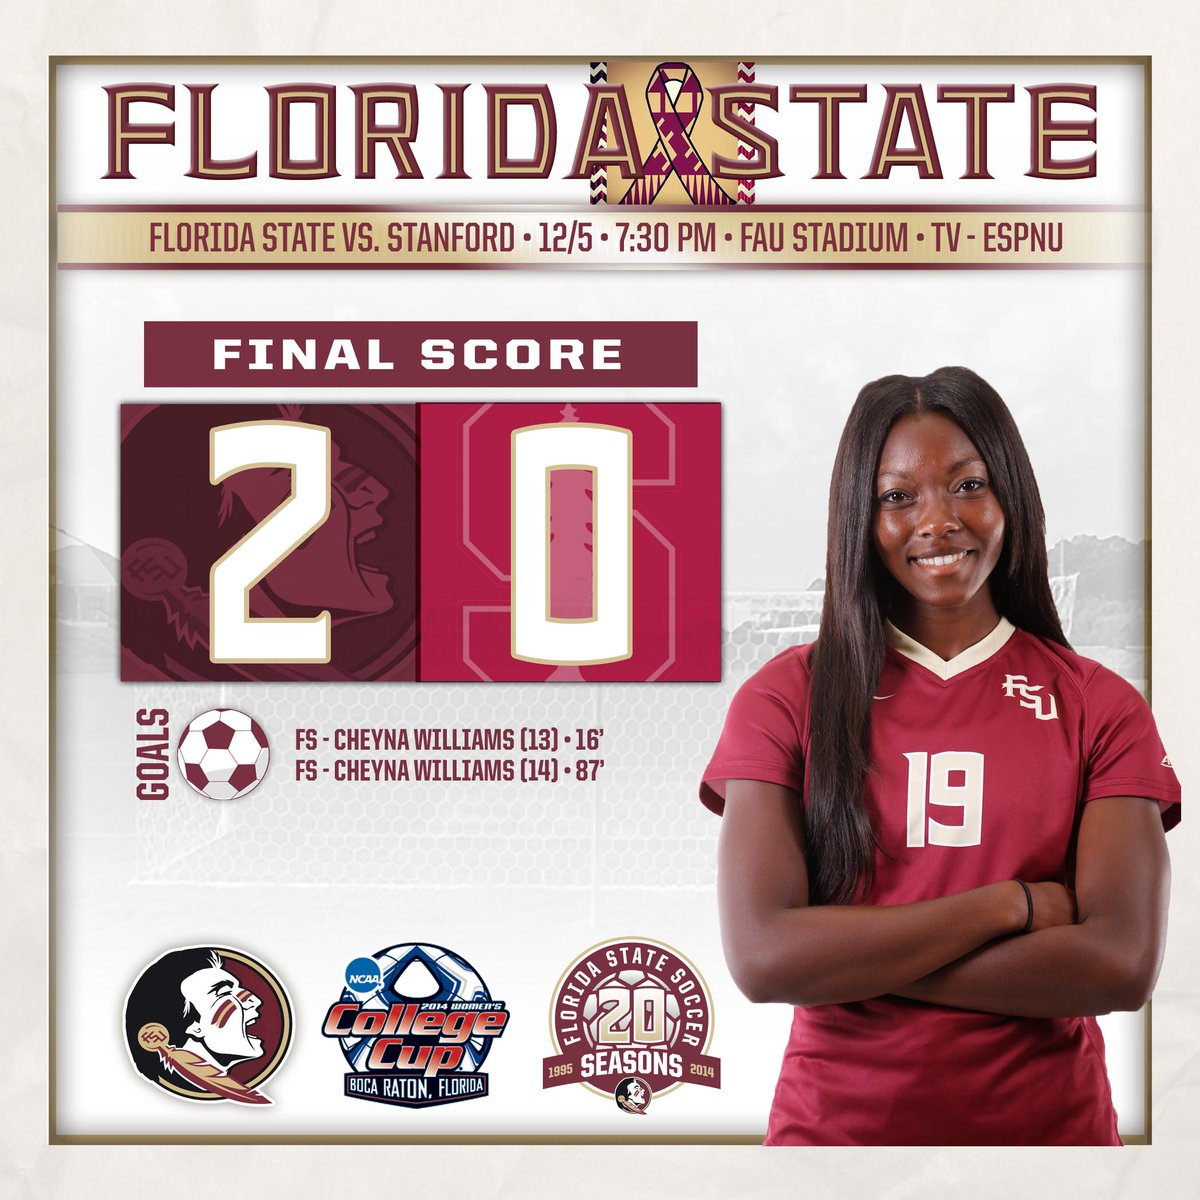 NOLES WIN!! FSU defeats Stanford, 2-0, to head to the National Championship game! http://t.co/VhyJXM3qme